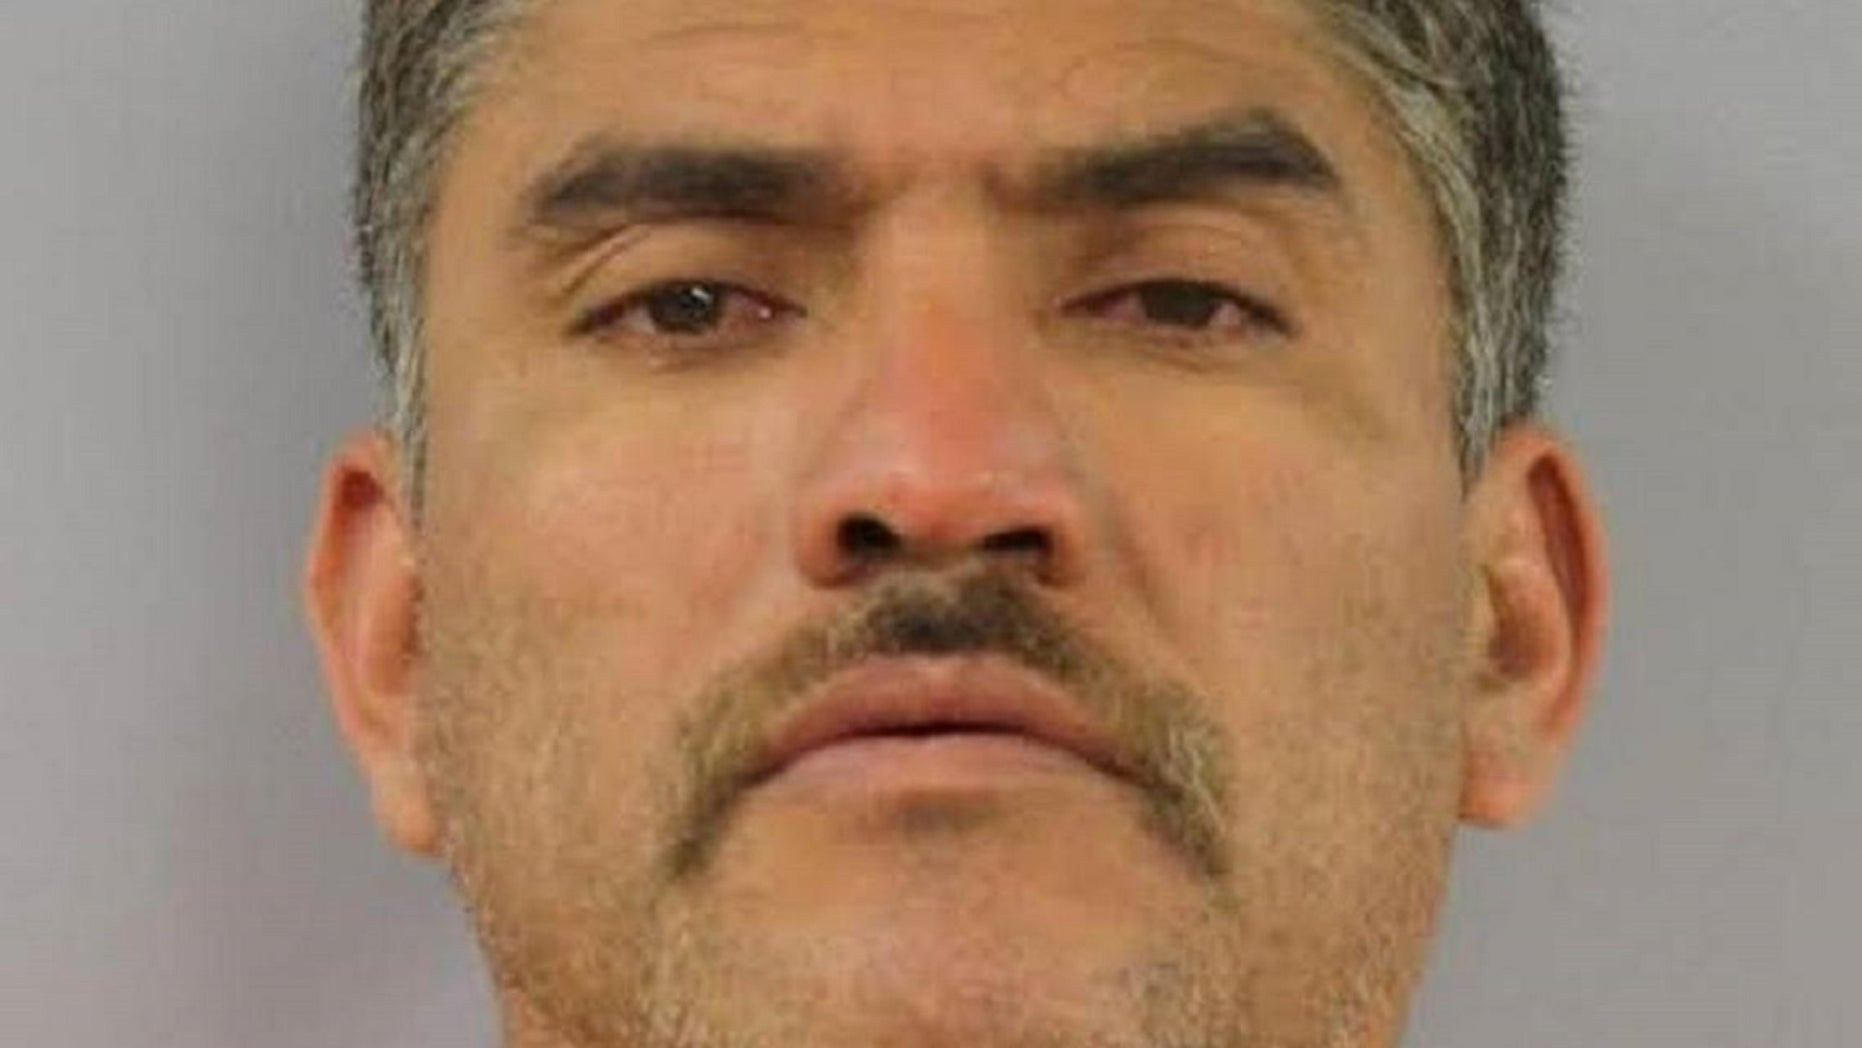 Pablo Serrano-Vitorino, 43, who illegally entered the United States, faced five counts of first-degree murder.